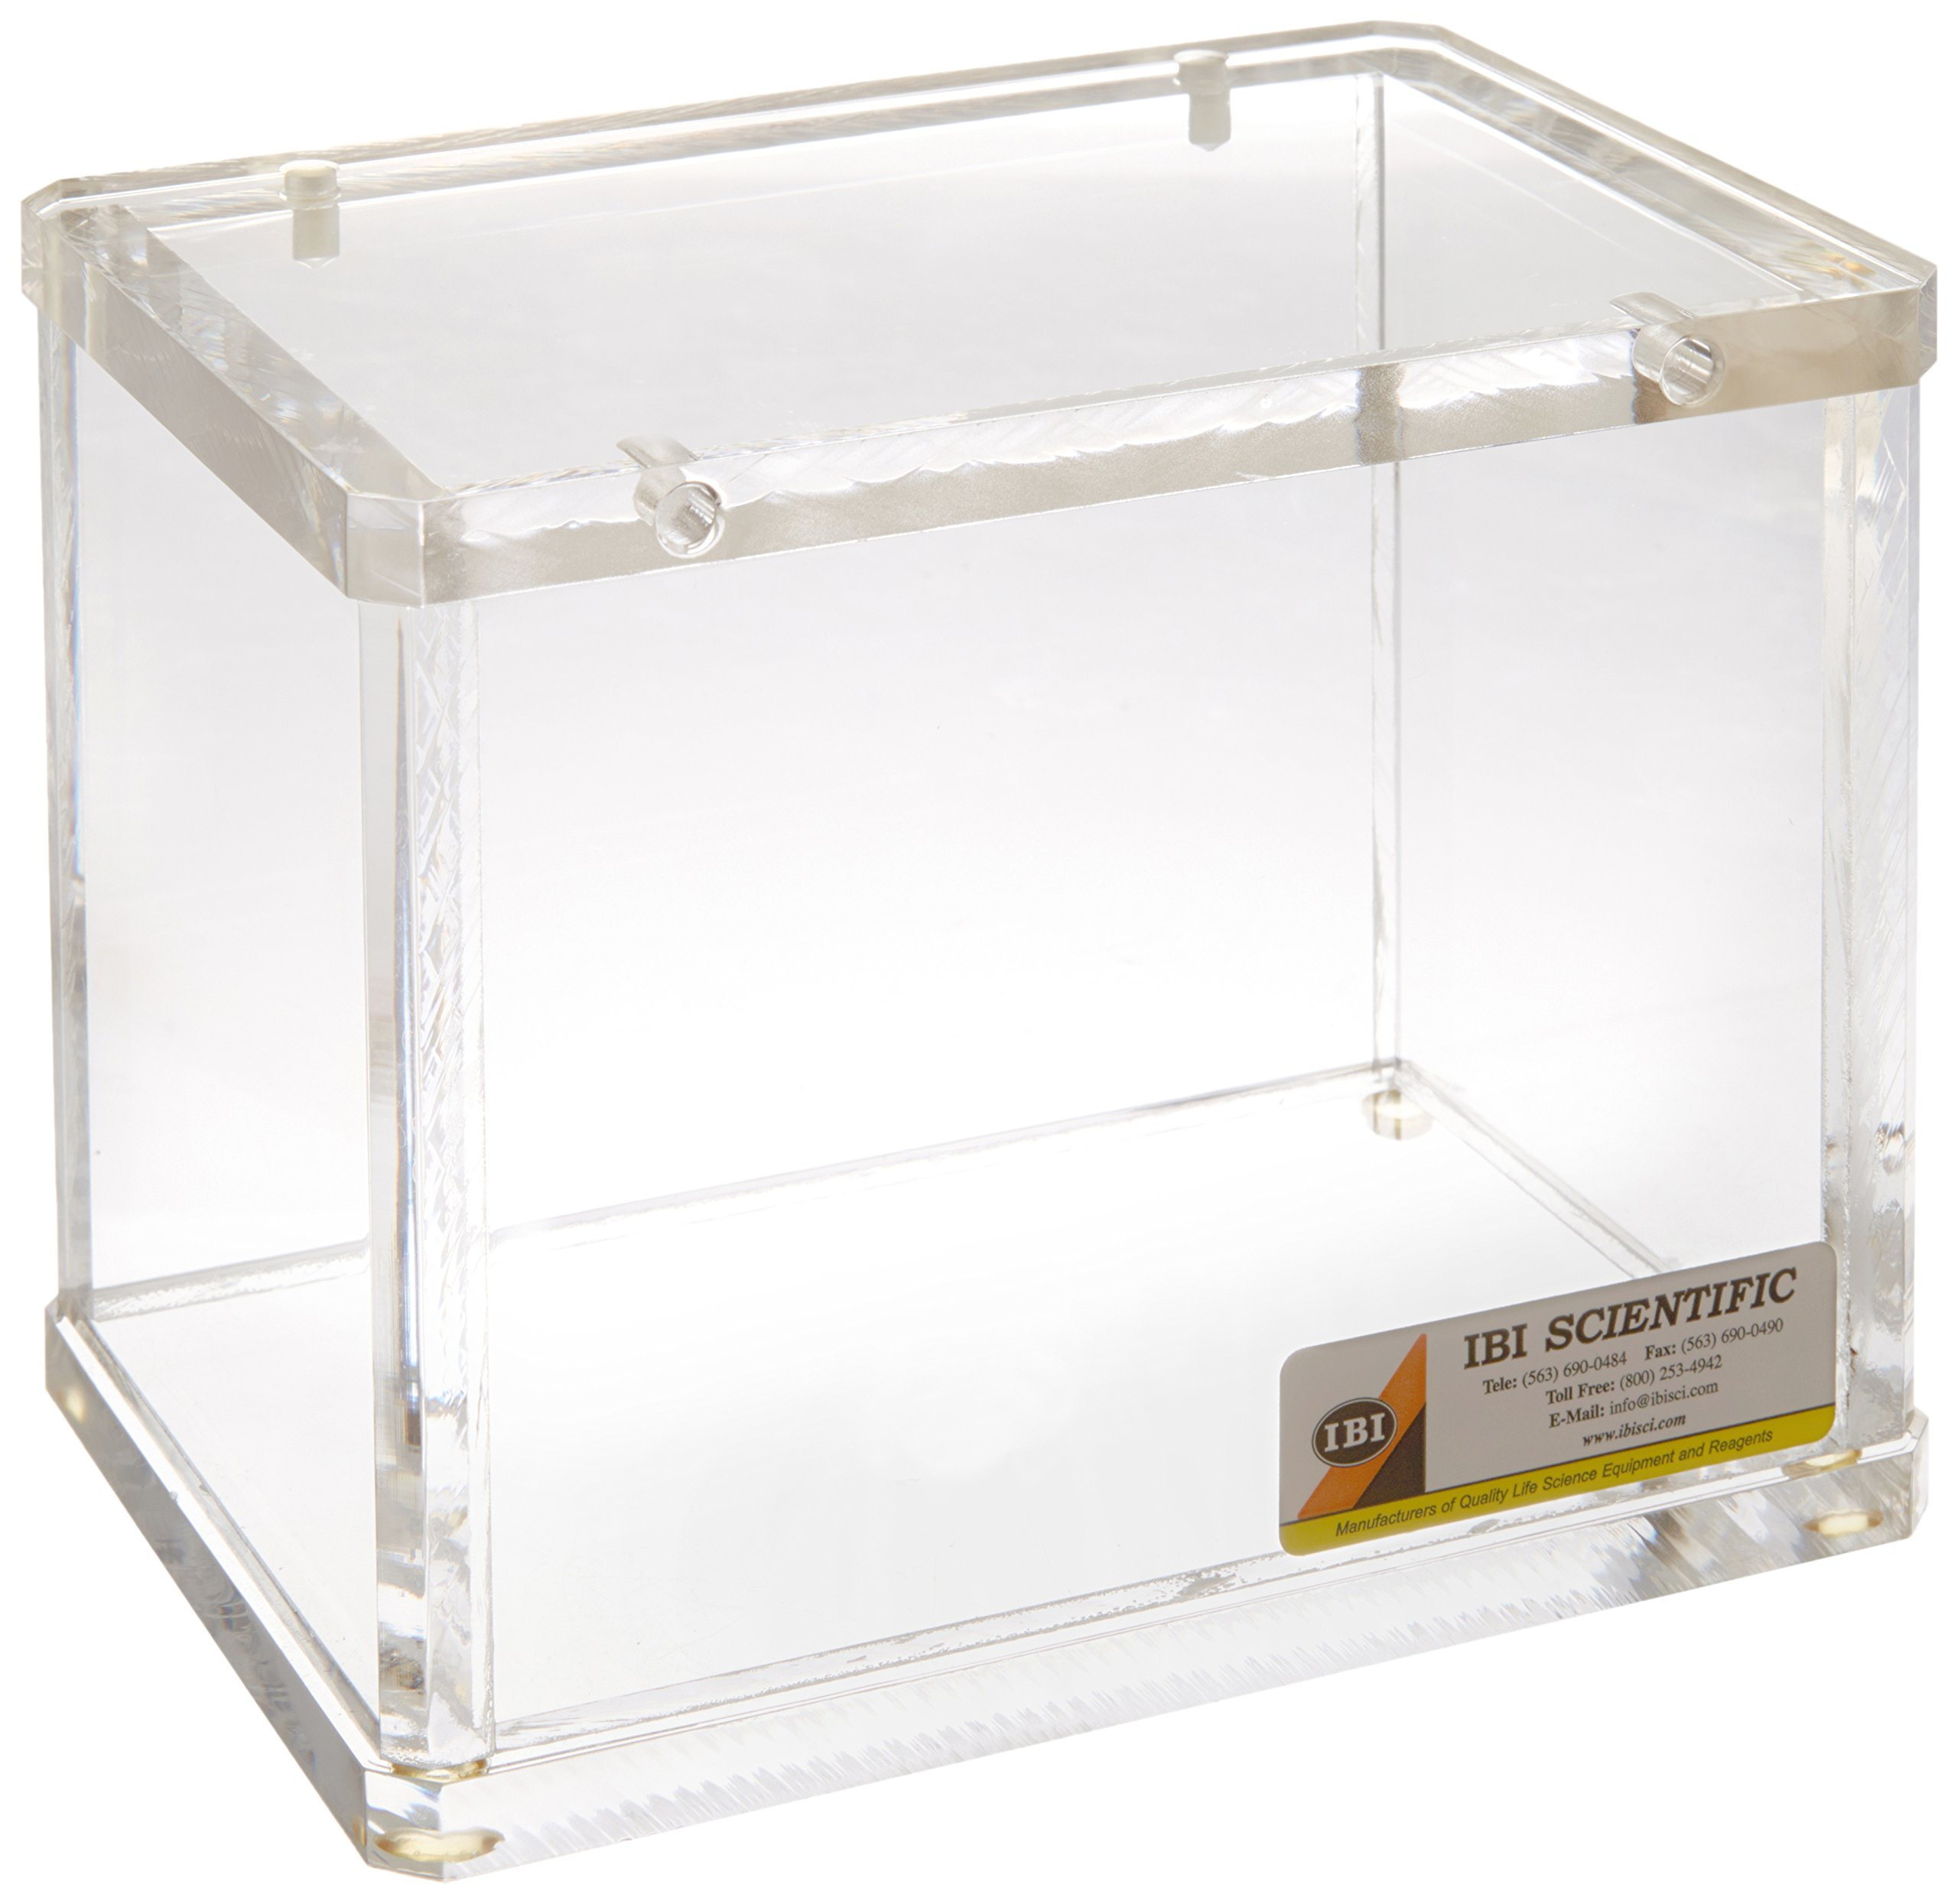 IBI Scientific FR-100 Cast Acrylic Storage Protection Container, 16.5cm H x 20.3cm W x 14cm D